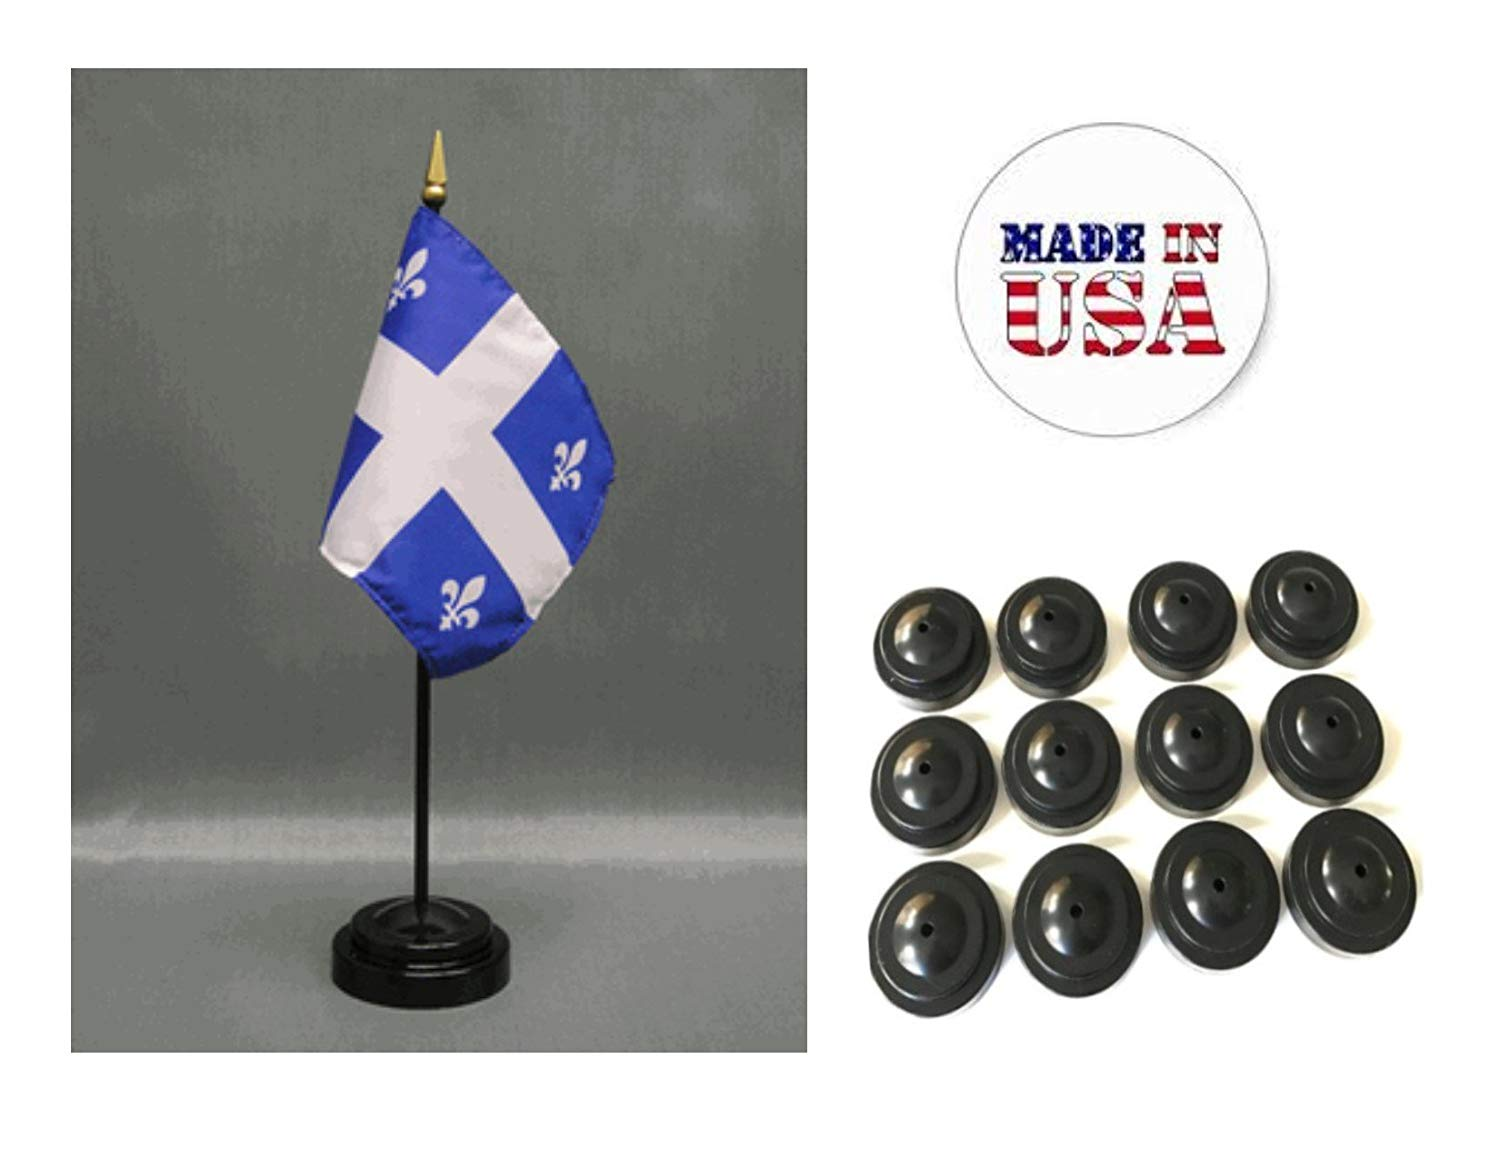 """Made in the USA!! Box of 12 Quebec 4""""x6"""" Miniature Desk & Table Flags Includes 12 Flag Stands & 12 Canada Quebec Small Mini Stick Flags"""